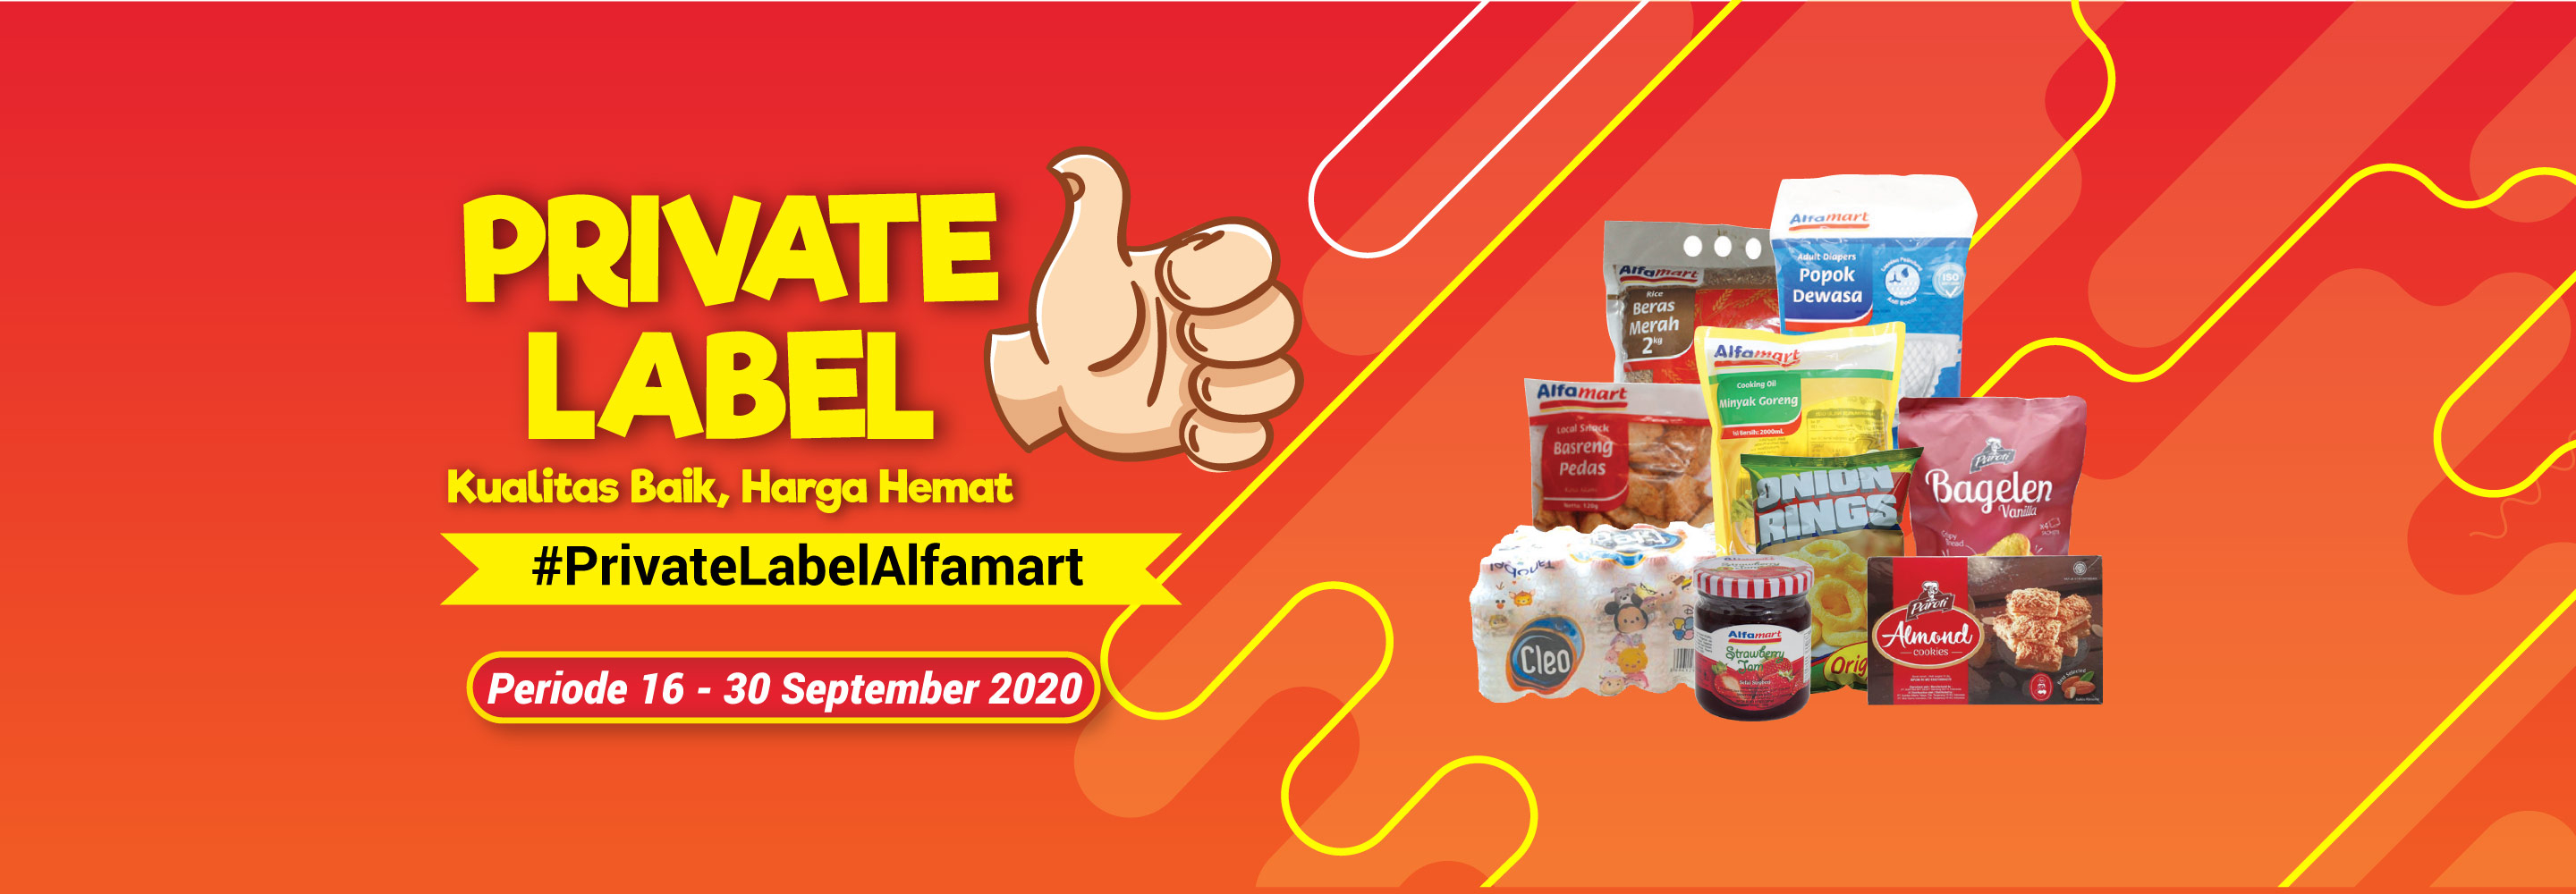 Banner promo Promo Private Label 16-30 September 2020 Alfamart